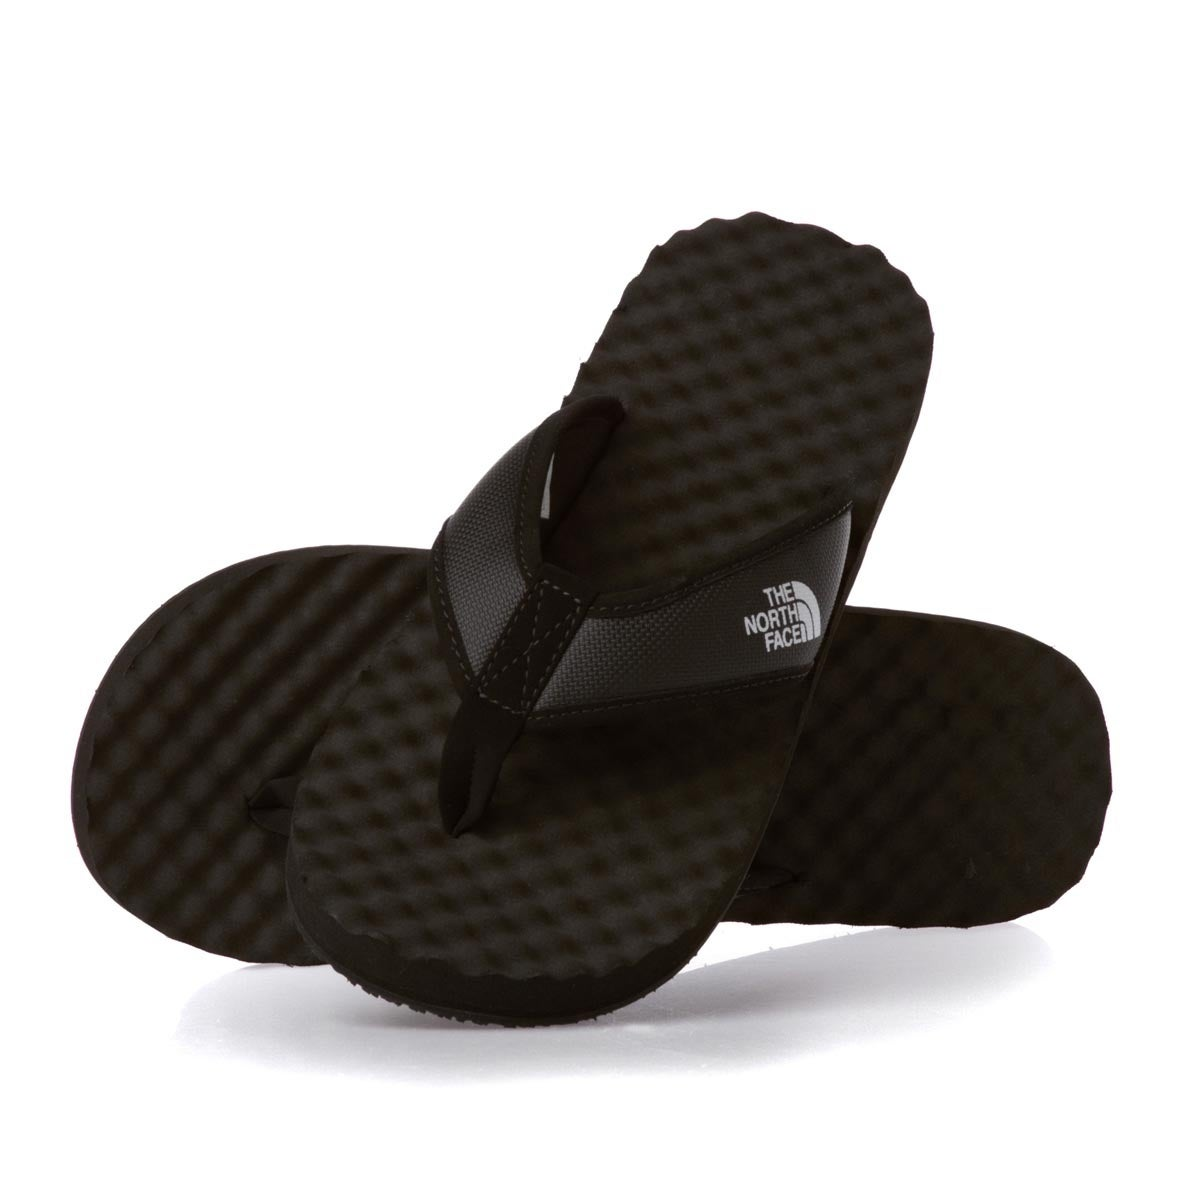 c279d965ef18 North Face Base Camp Flip Flop Sandals available from Surfdome